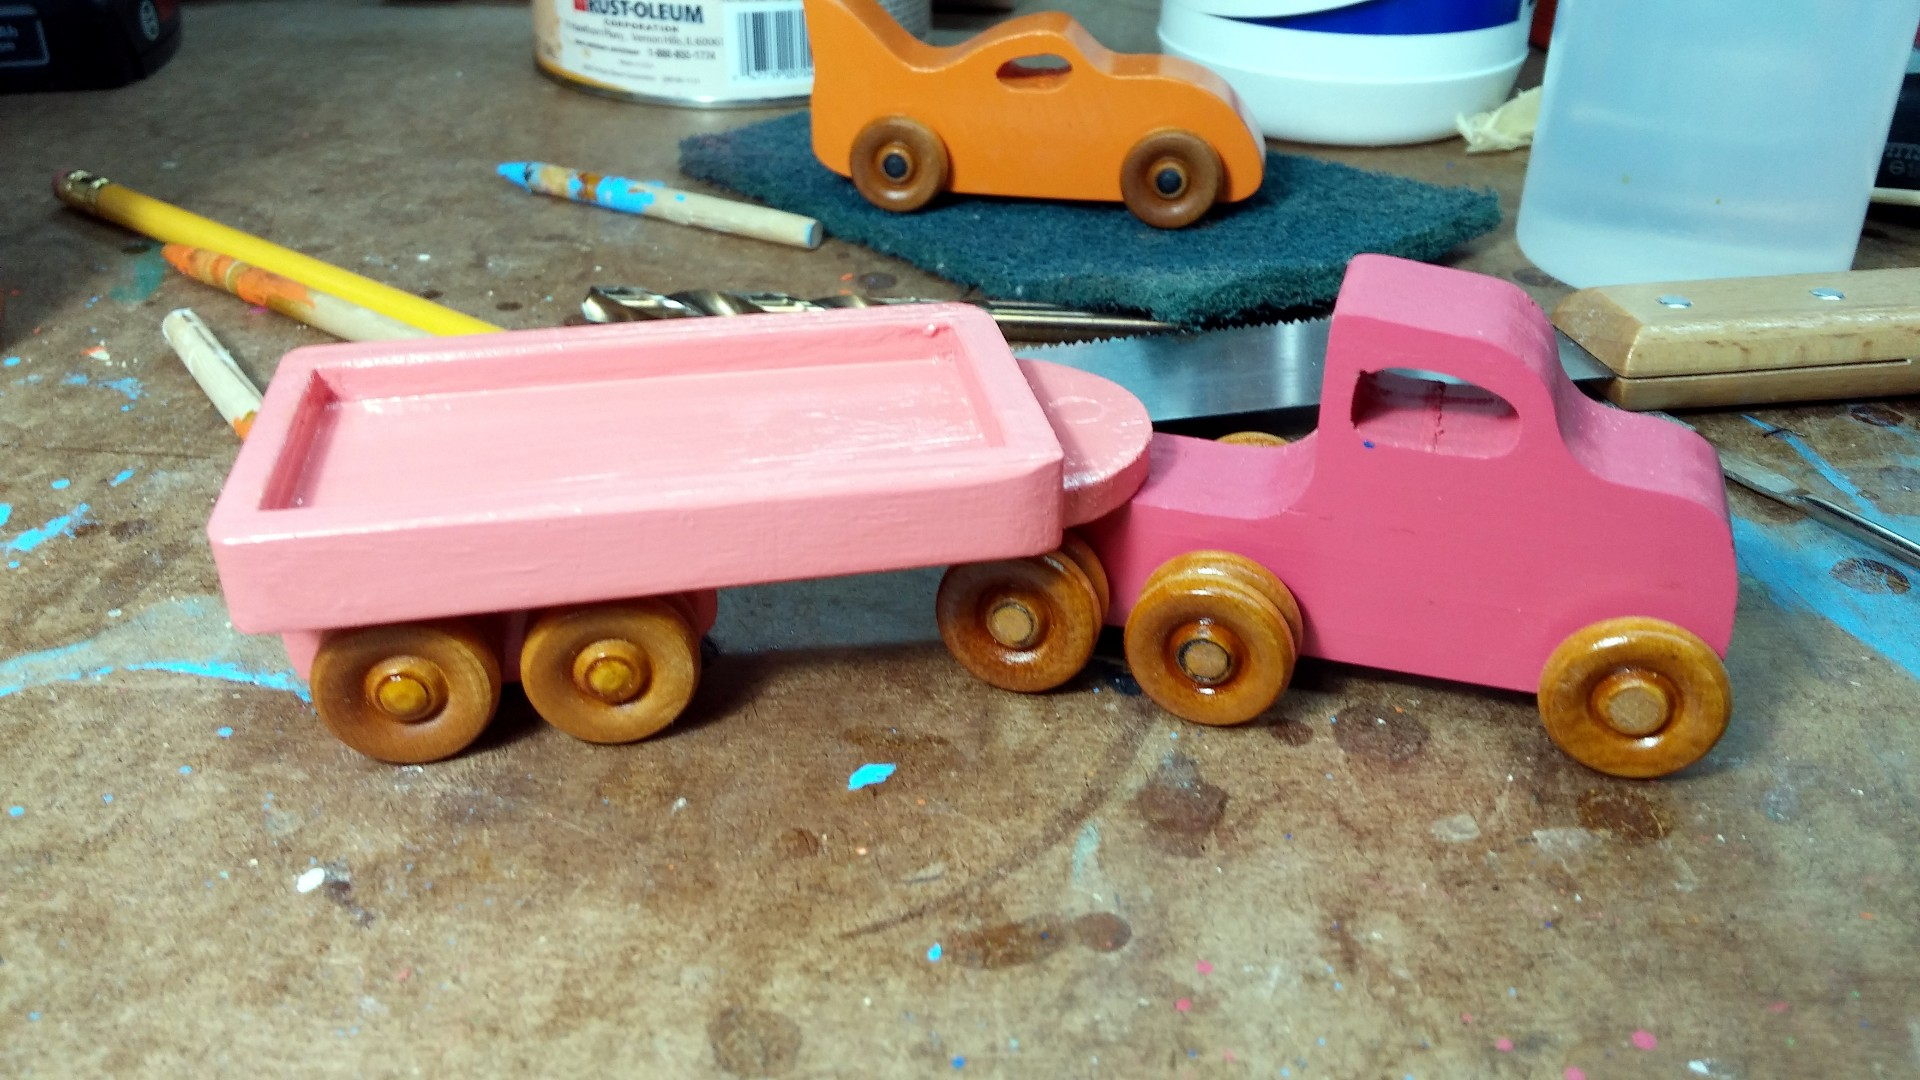 2017-05-11 04.22.32 - Wooden Toy - Play Pal - Trailer - Truck - Pink.jpg